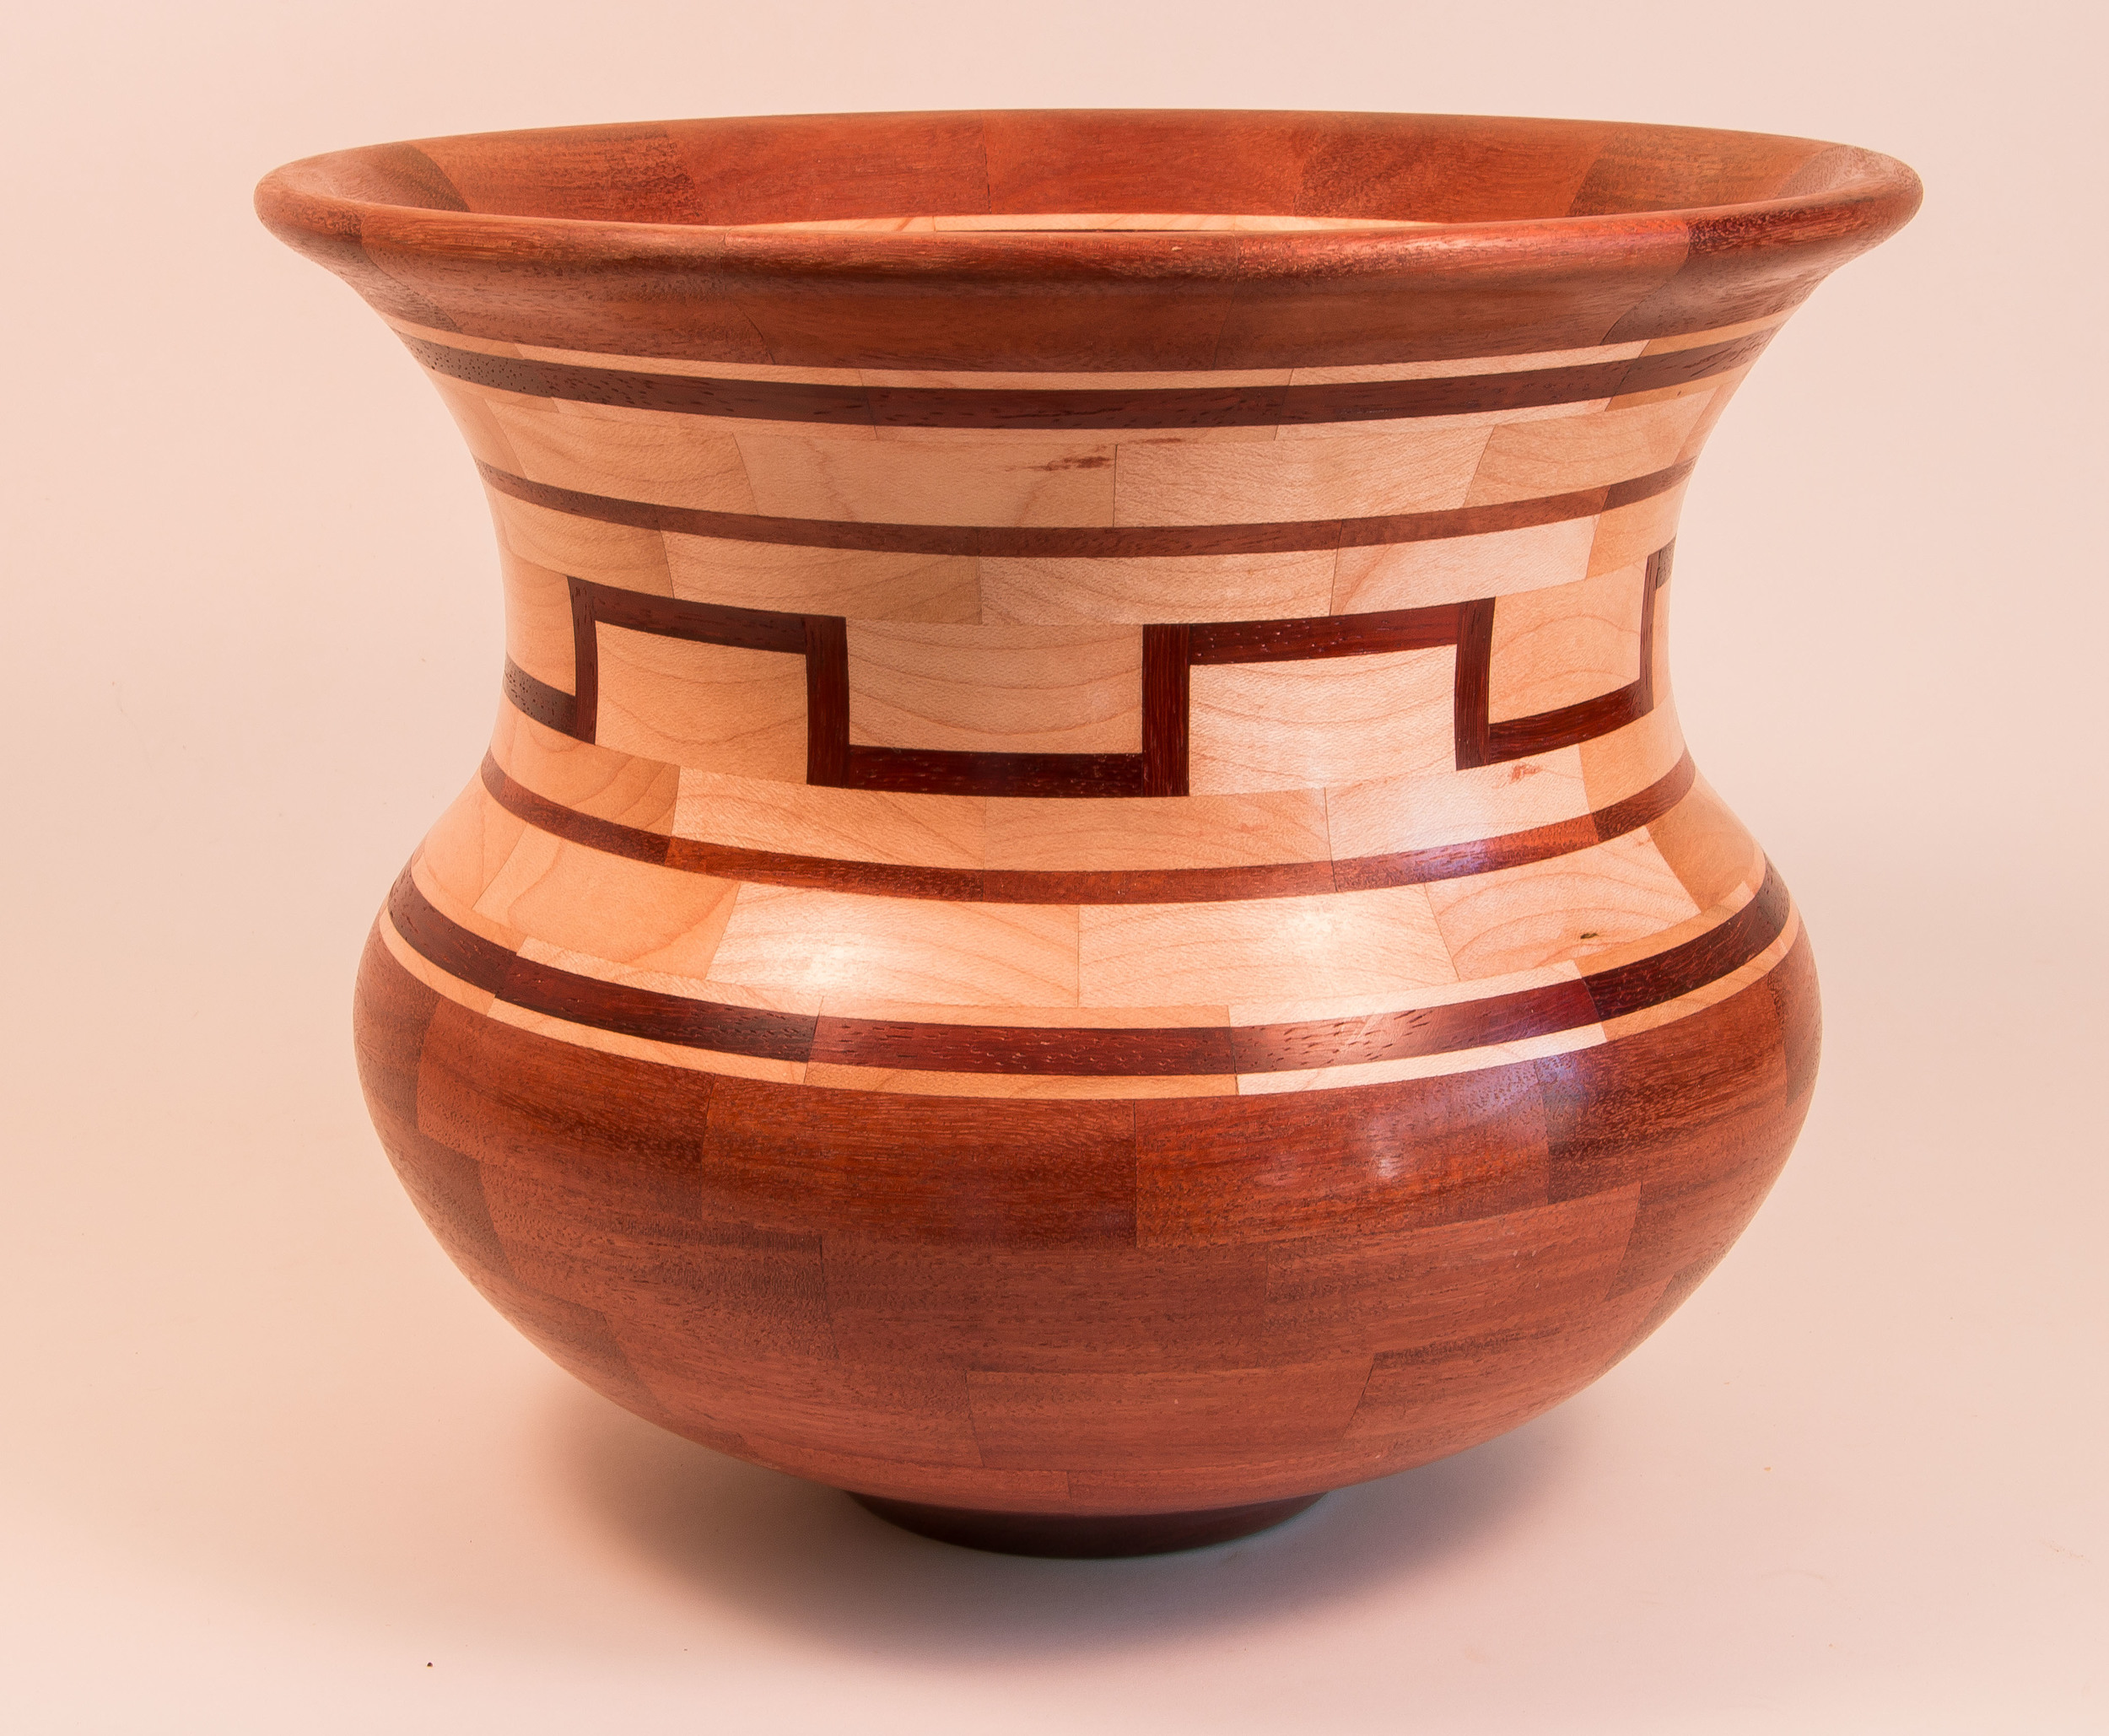 Large segmented bowl